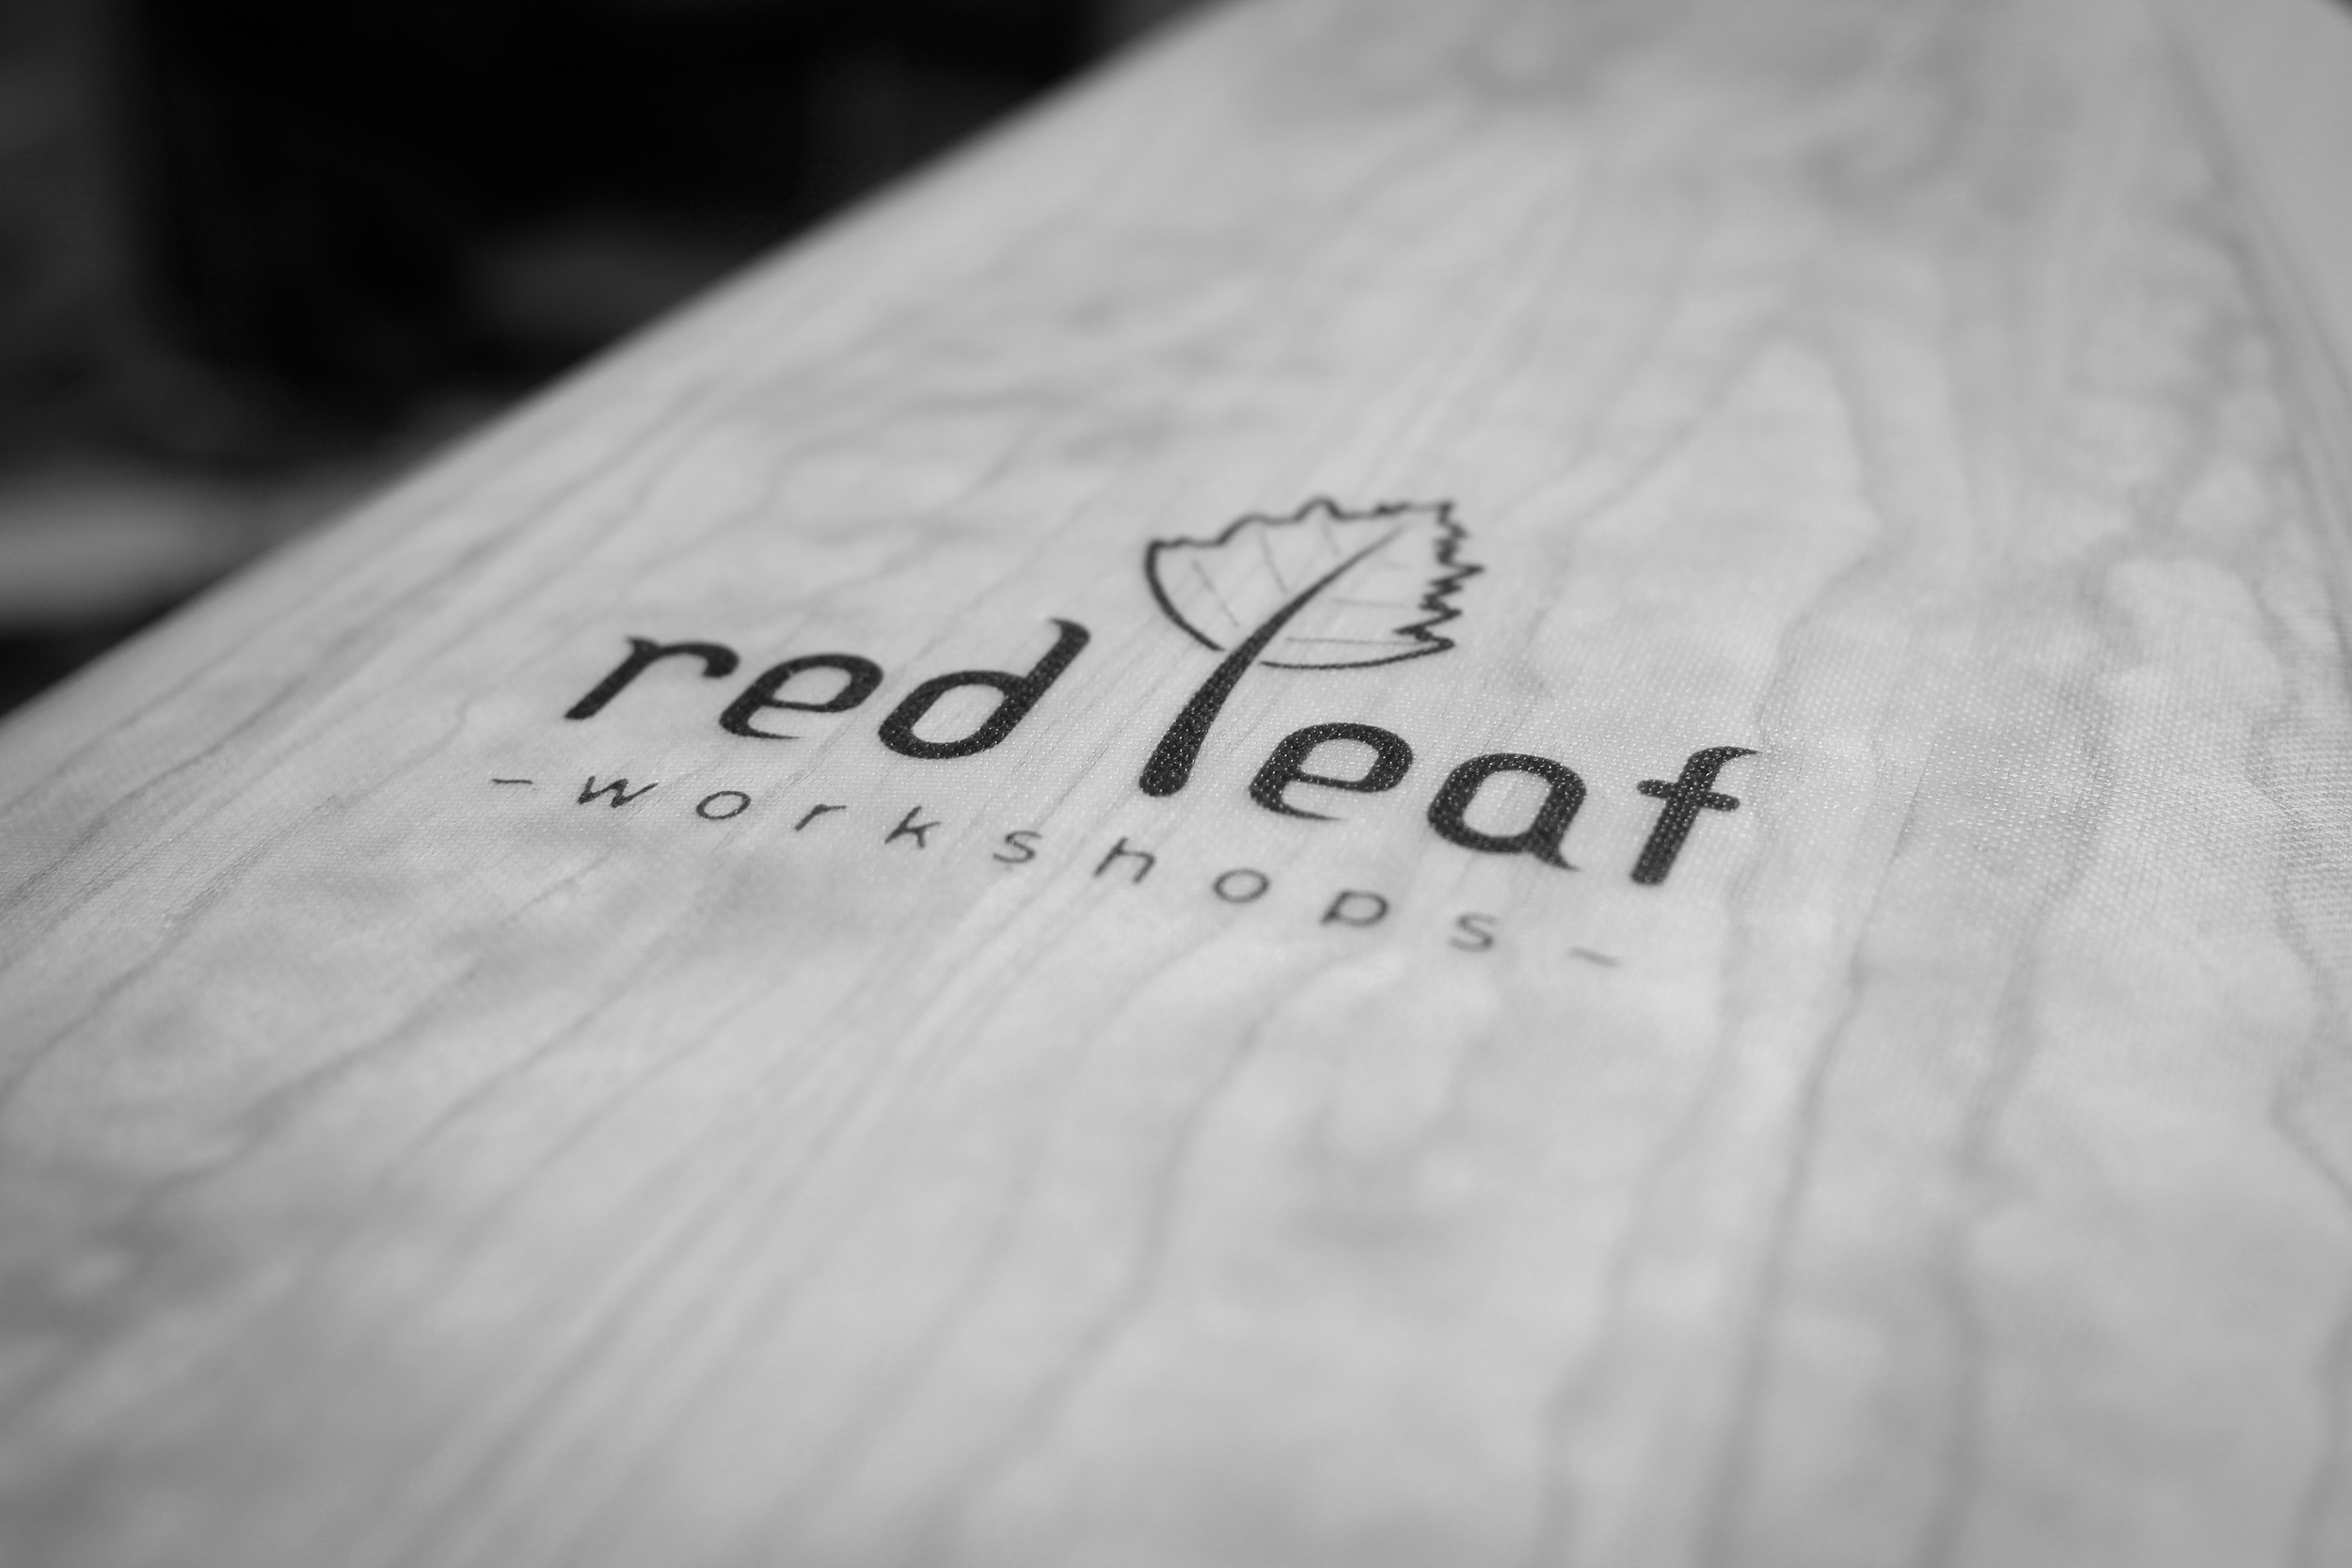 Red Leaf Workshops wooden surfboard